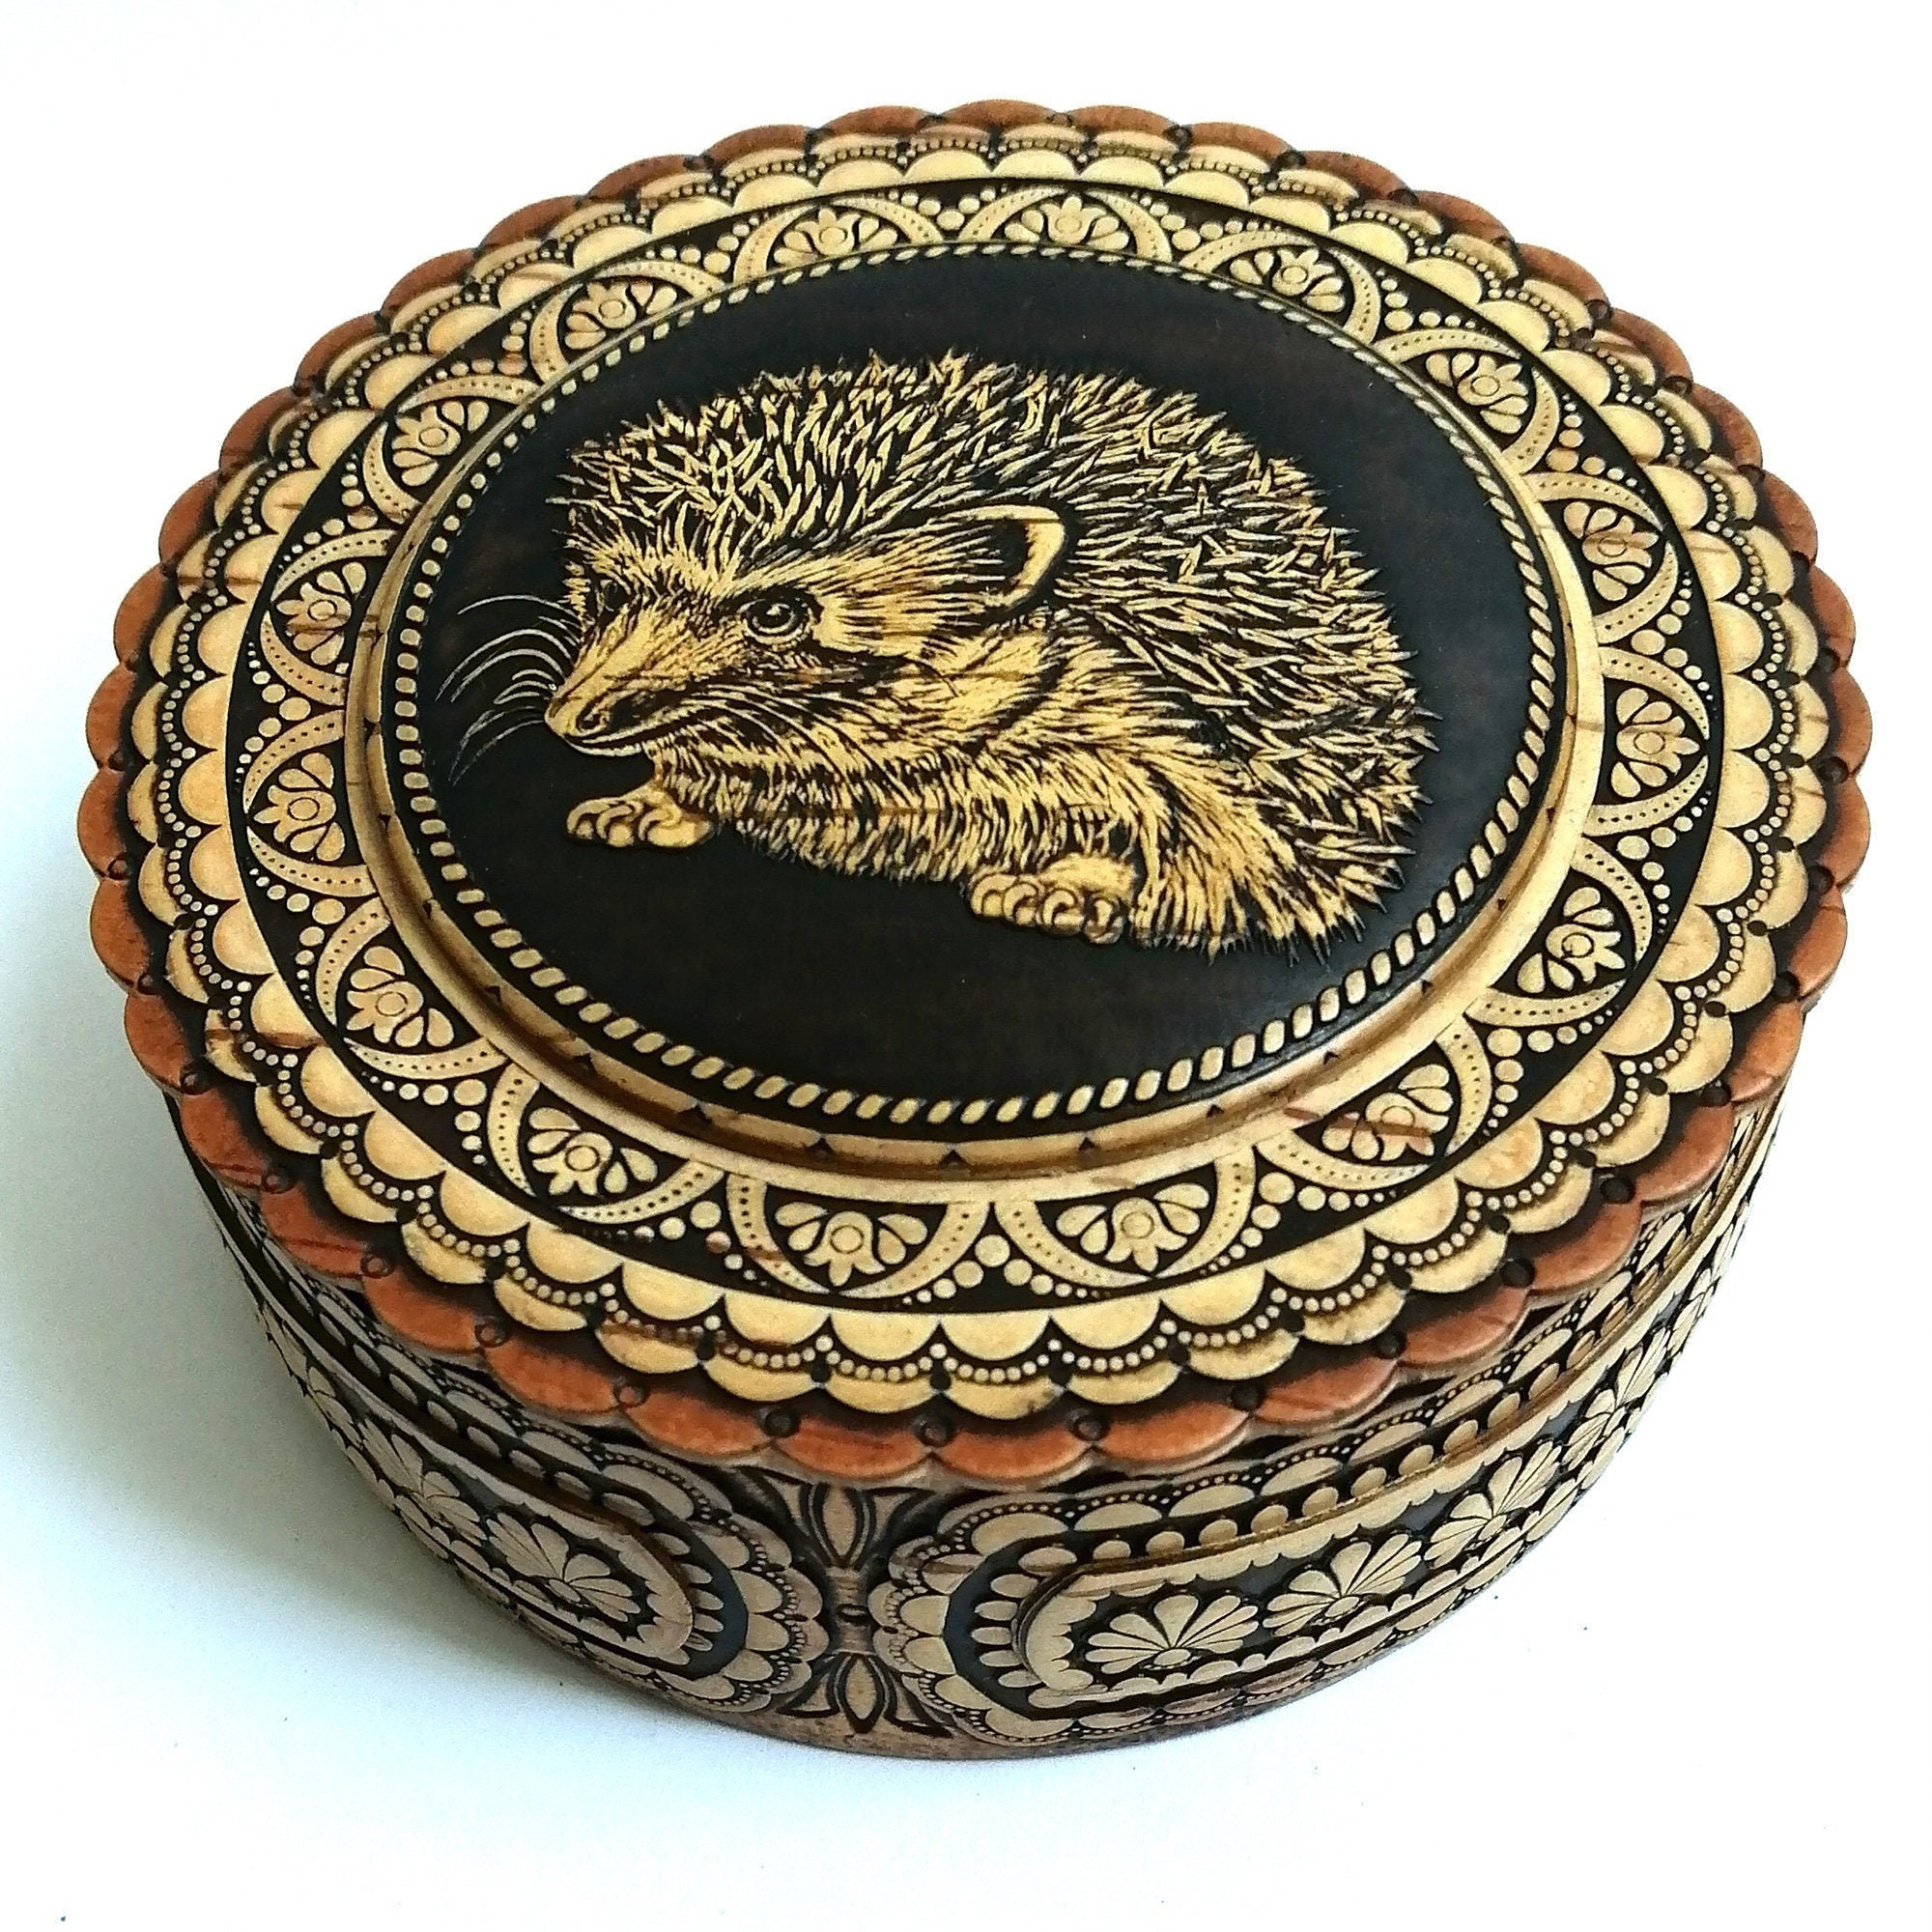 Jewelry box with the image of the Hedgehog. Handmade birch bark box. Jewelry box for lovers of cute animals. Eco-friendly gift.